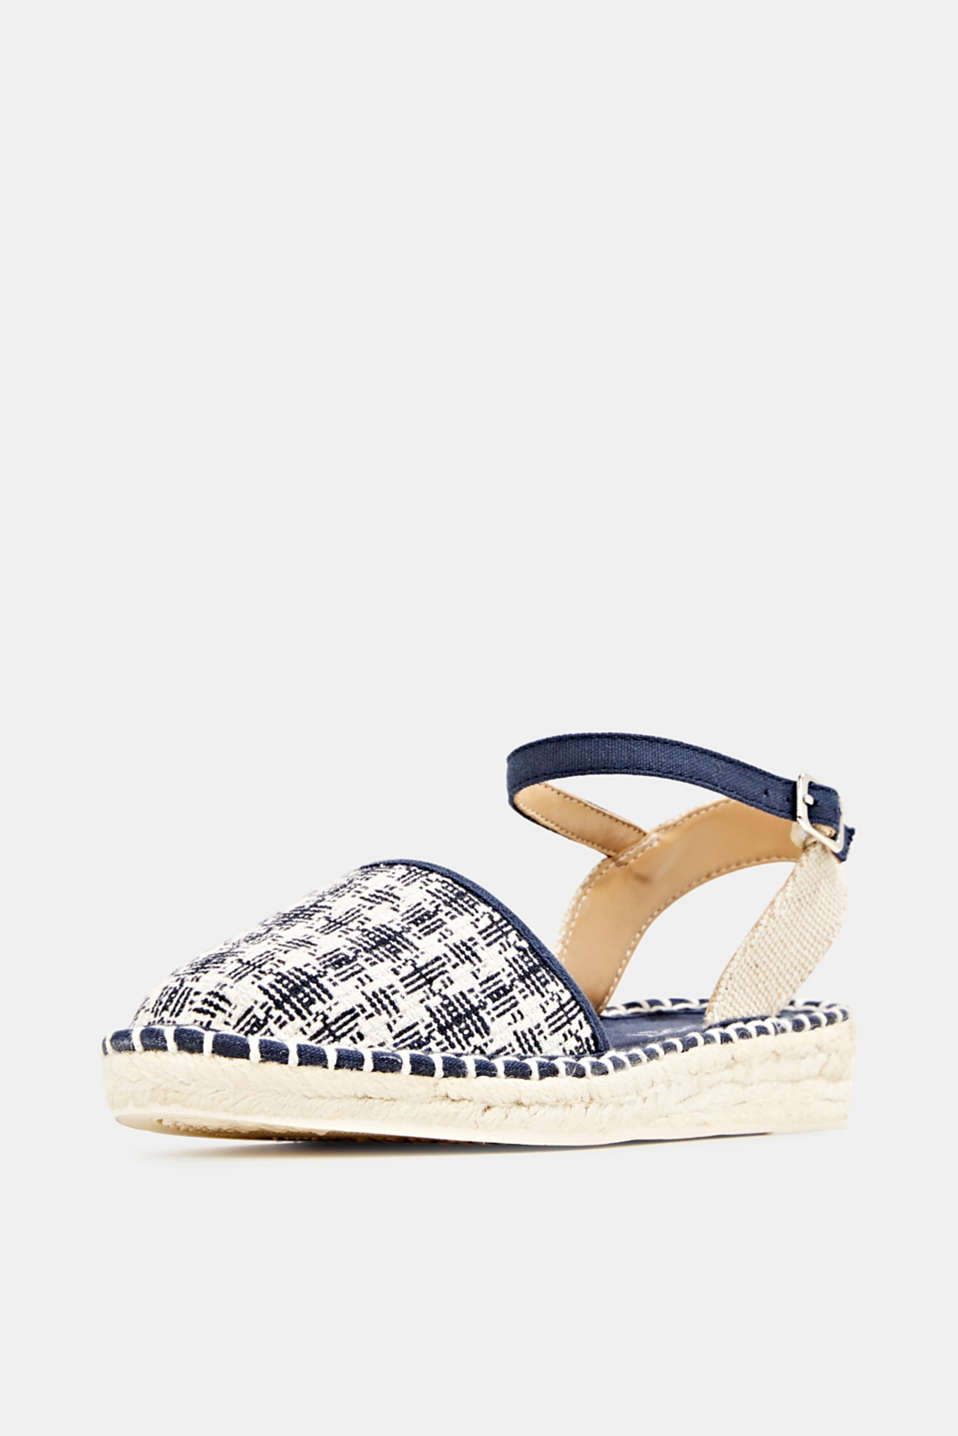 Espadrille sandals with a check pattern, NAVY, detail image number 2